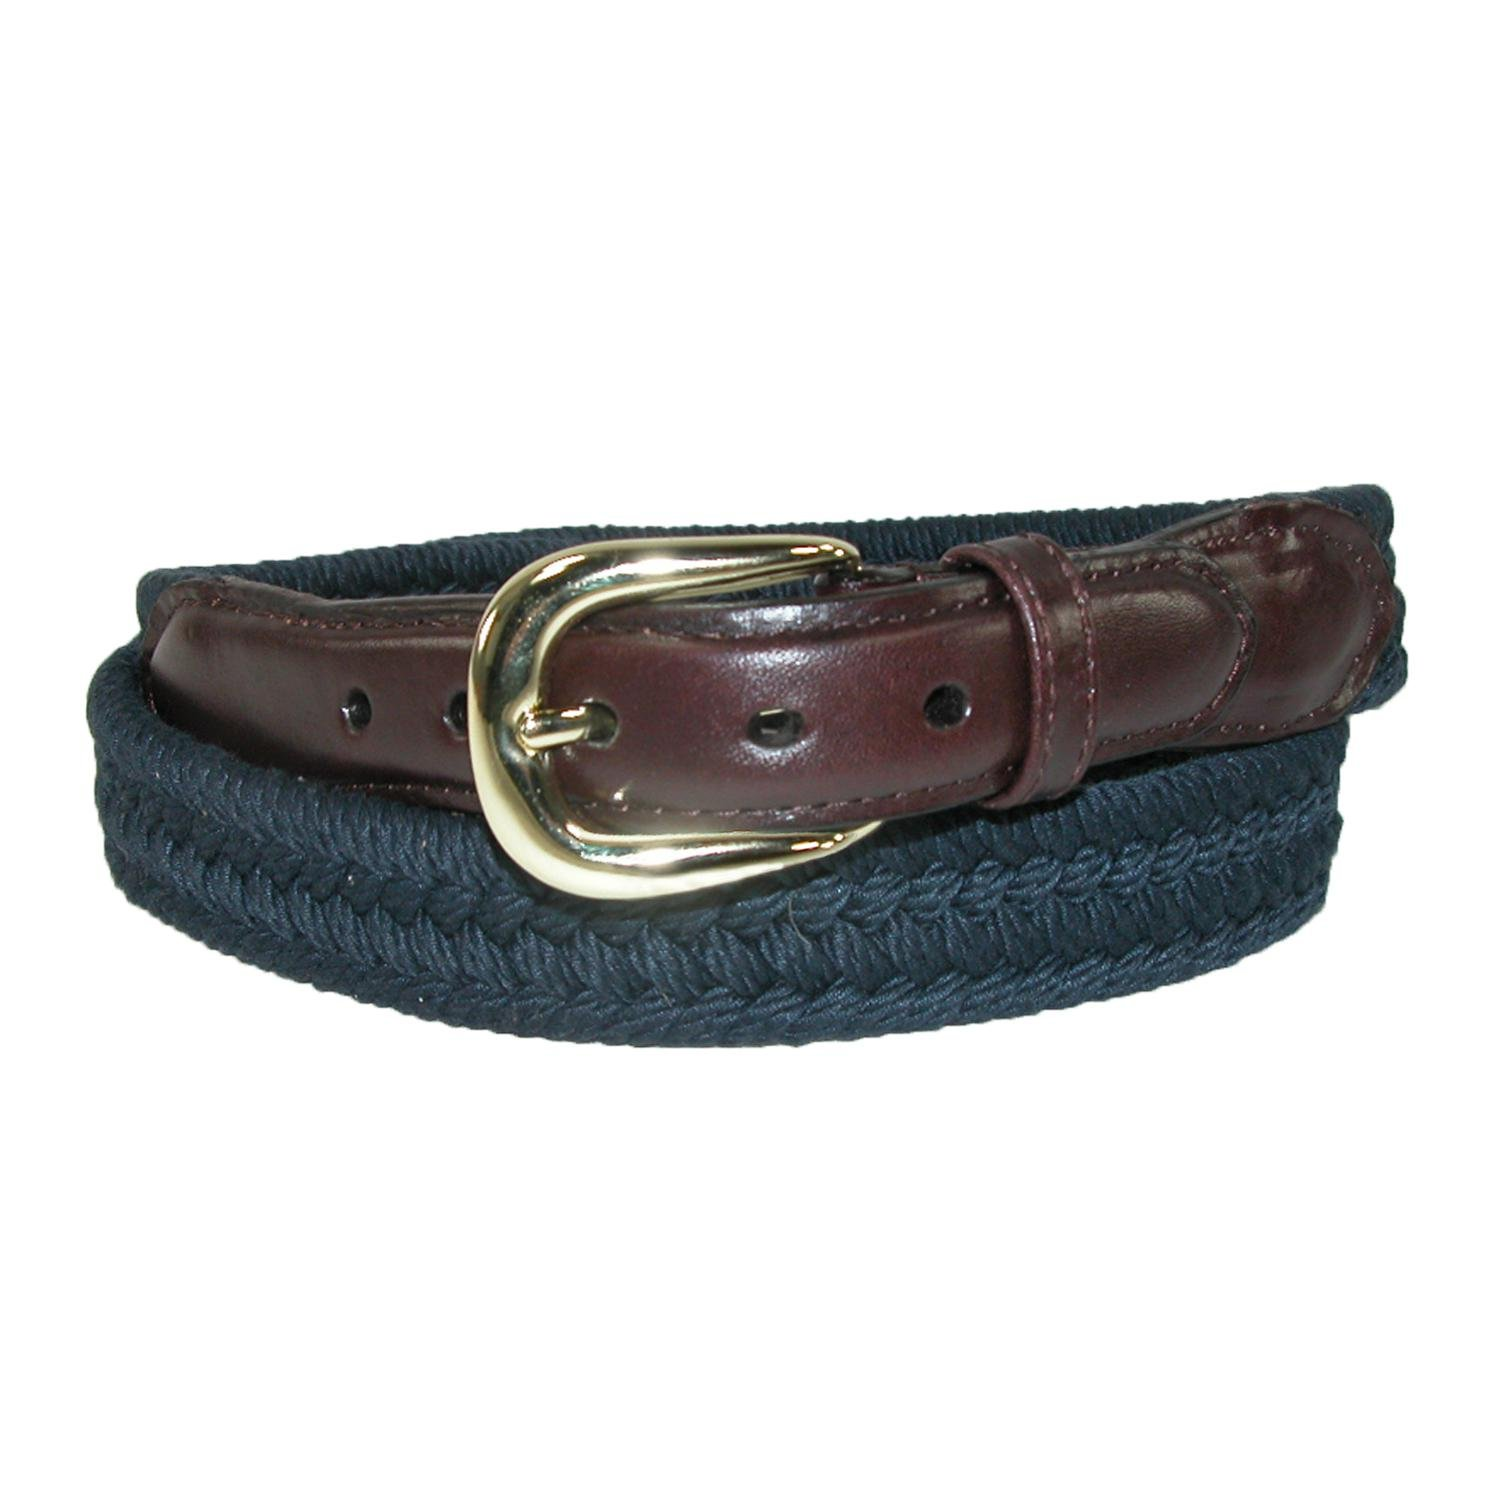 Rogers-Whitley Men's Cotton with Leather Trim Braided Belt, 34, Navy